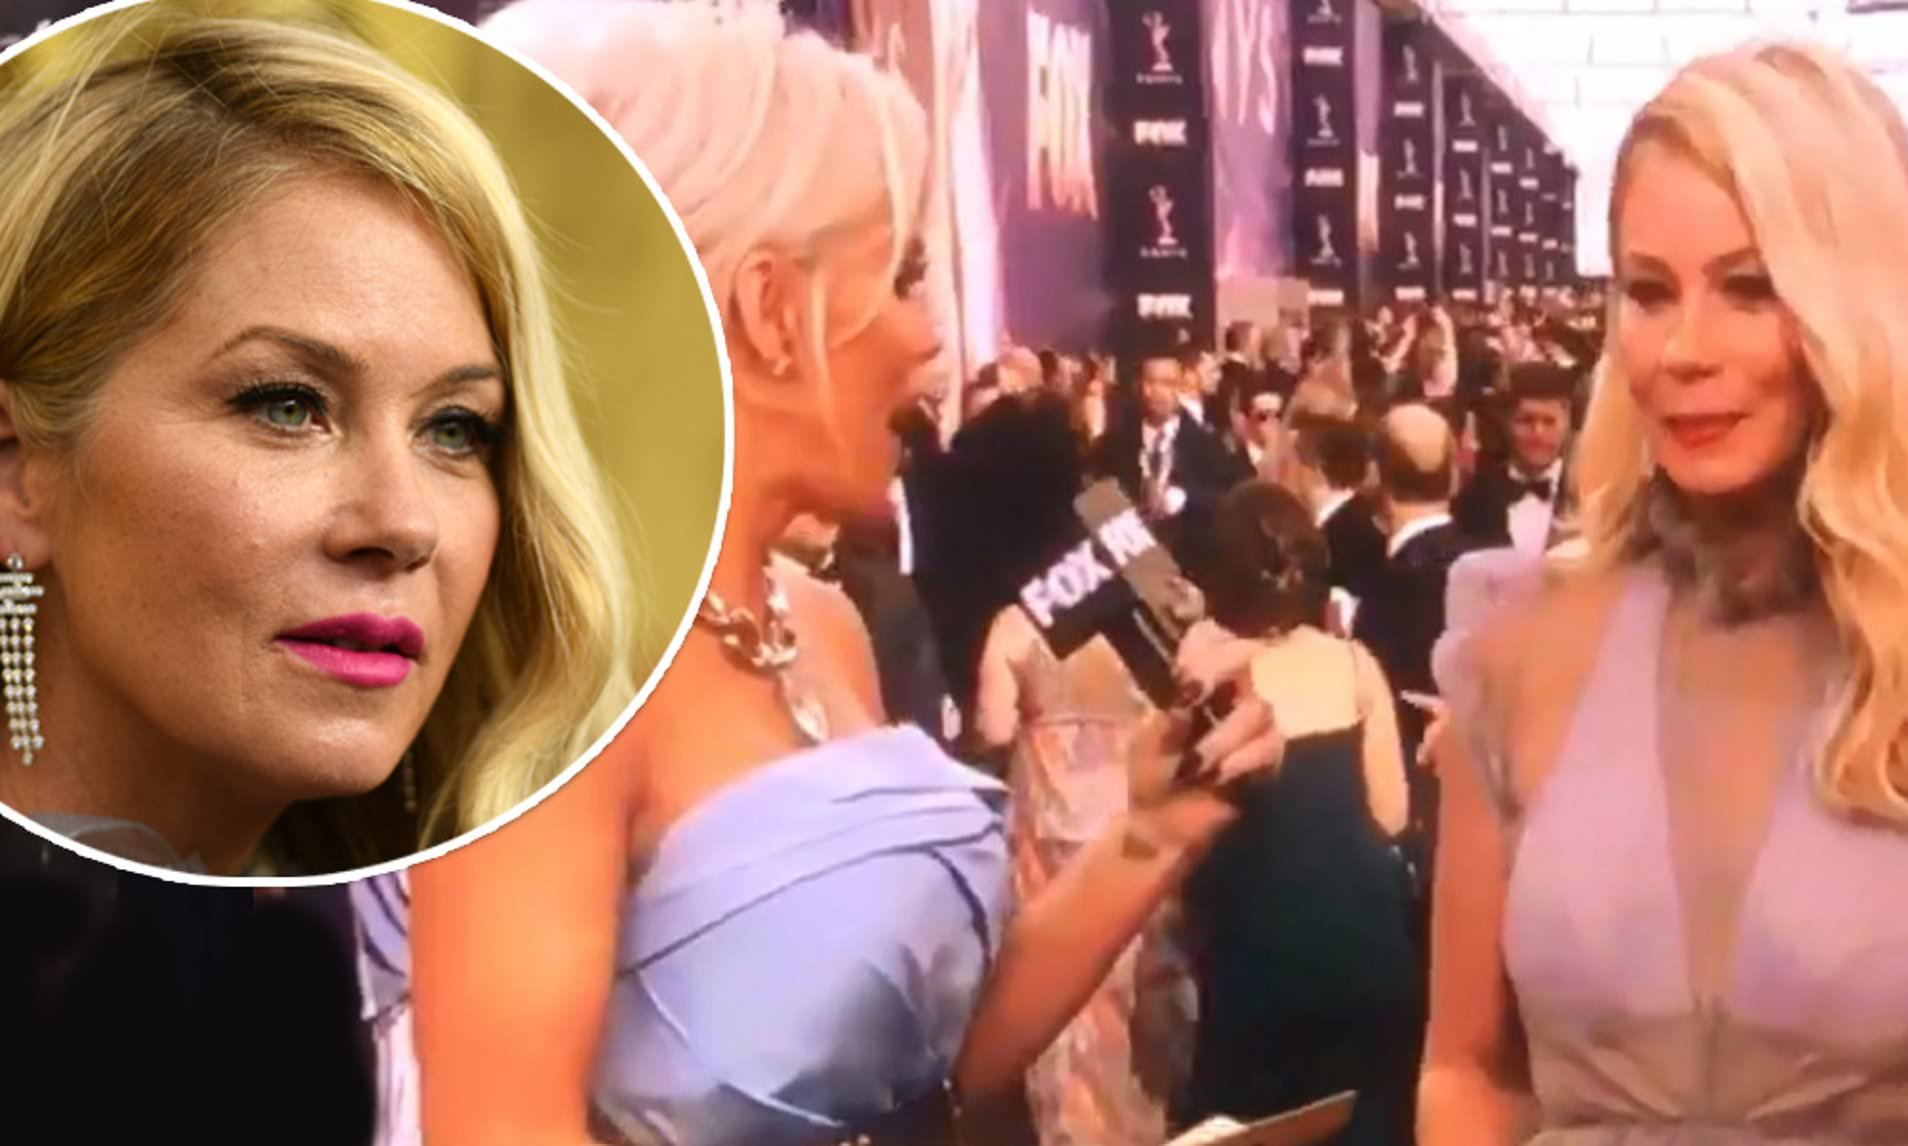 Quick Shout Out To Christina Applegate photo 8